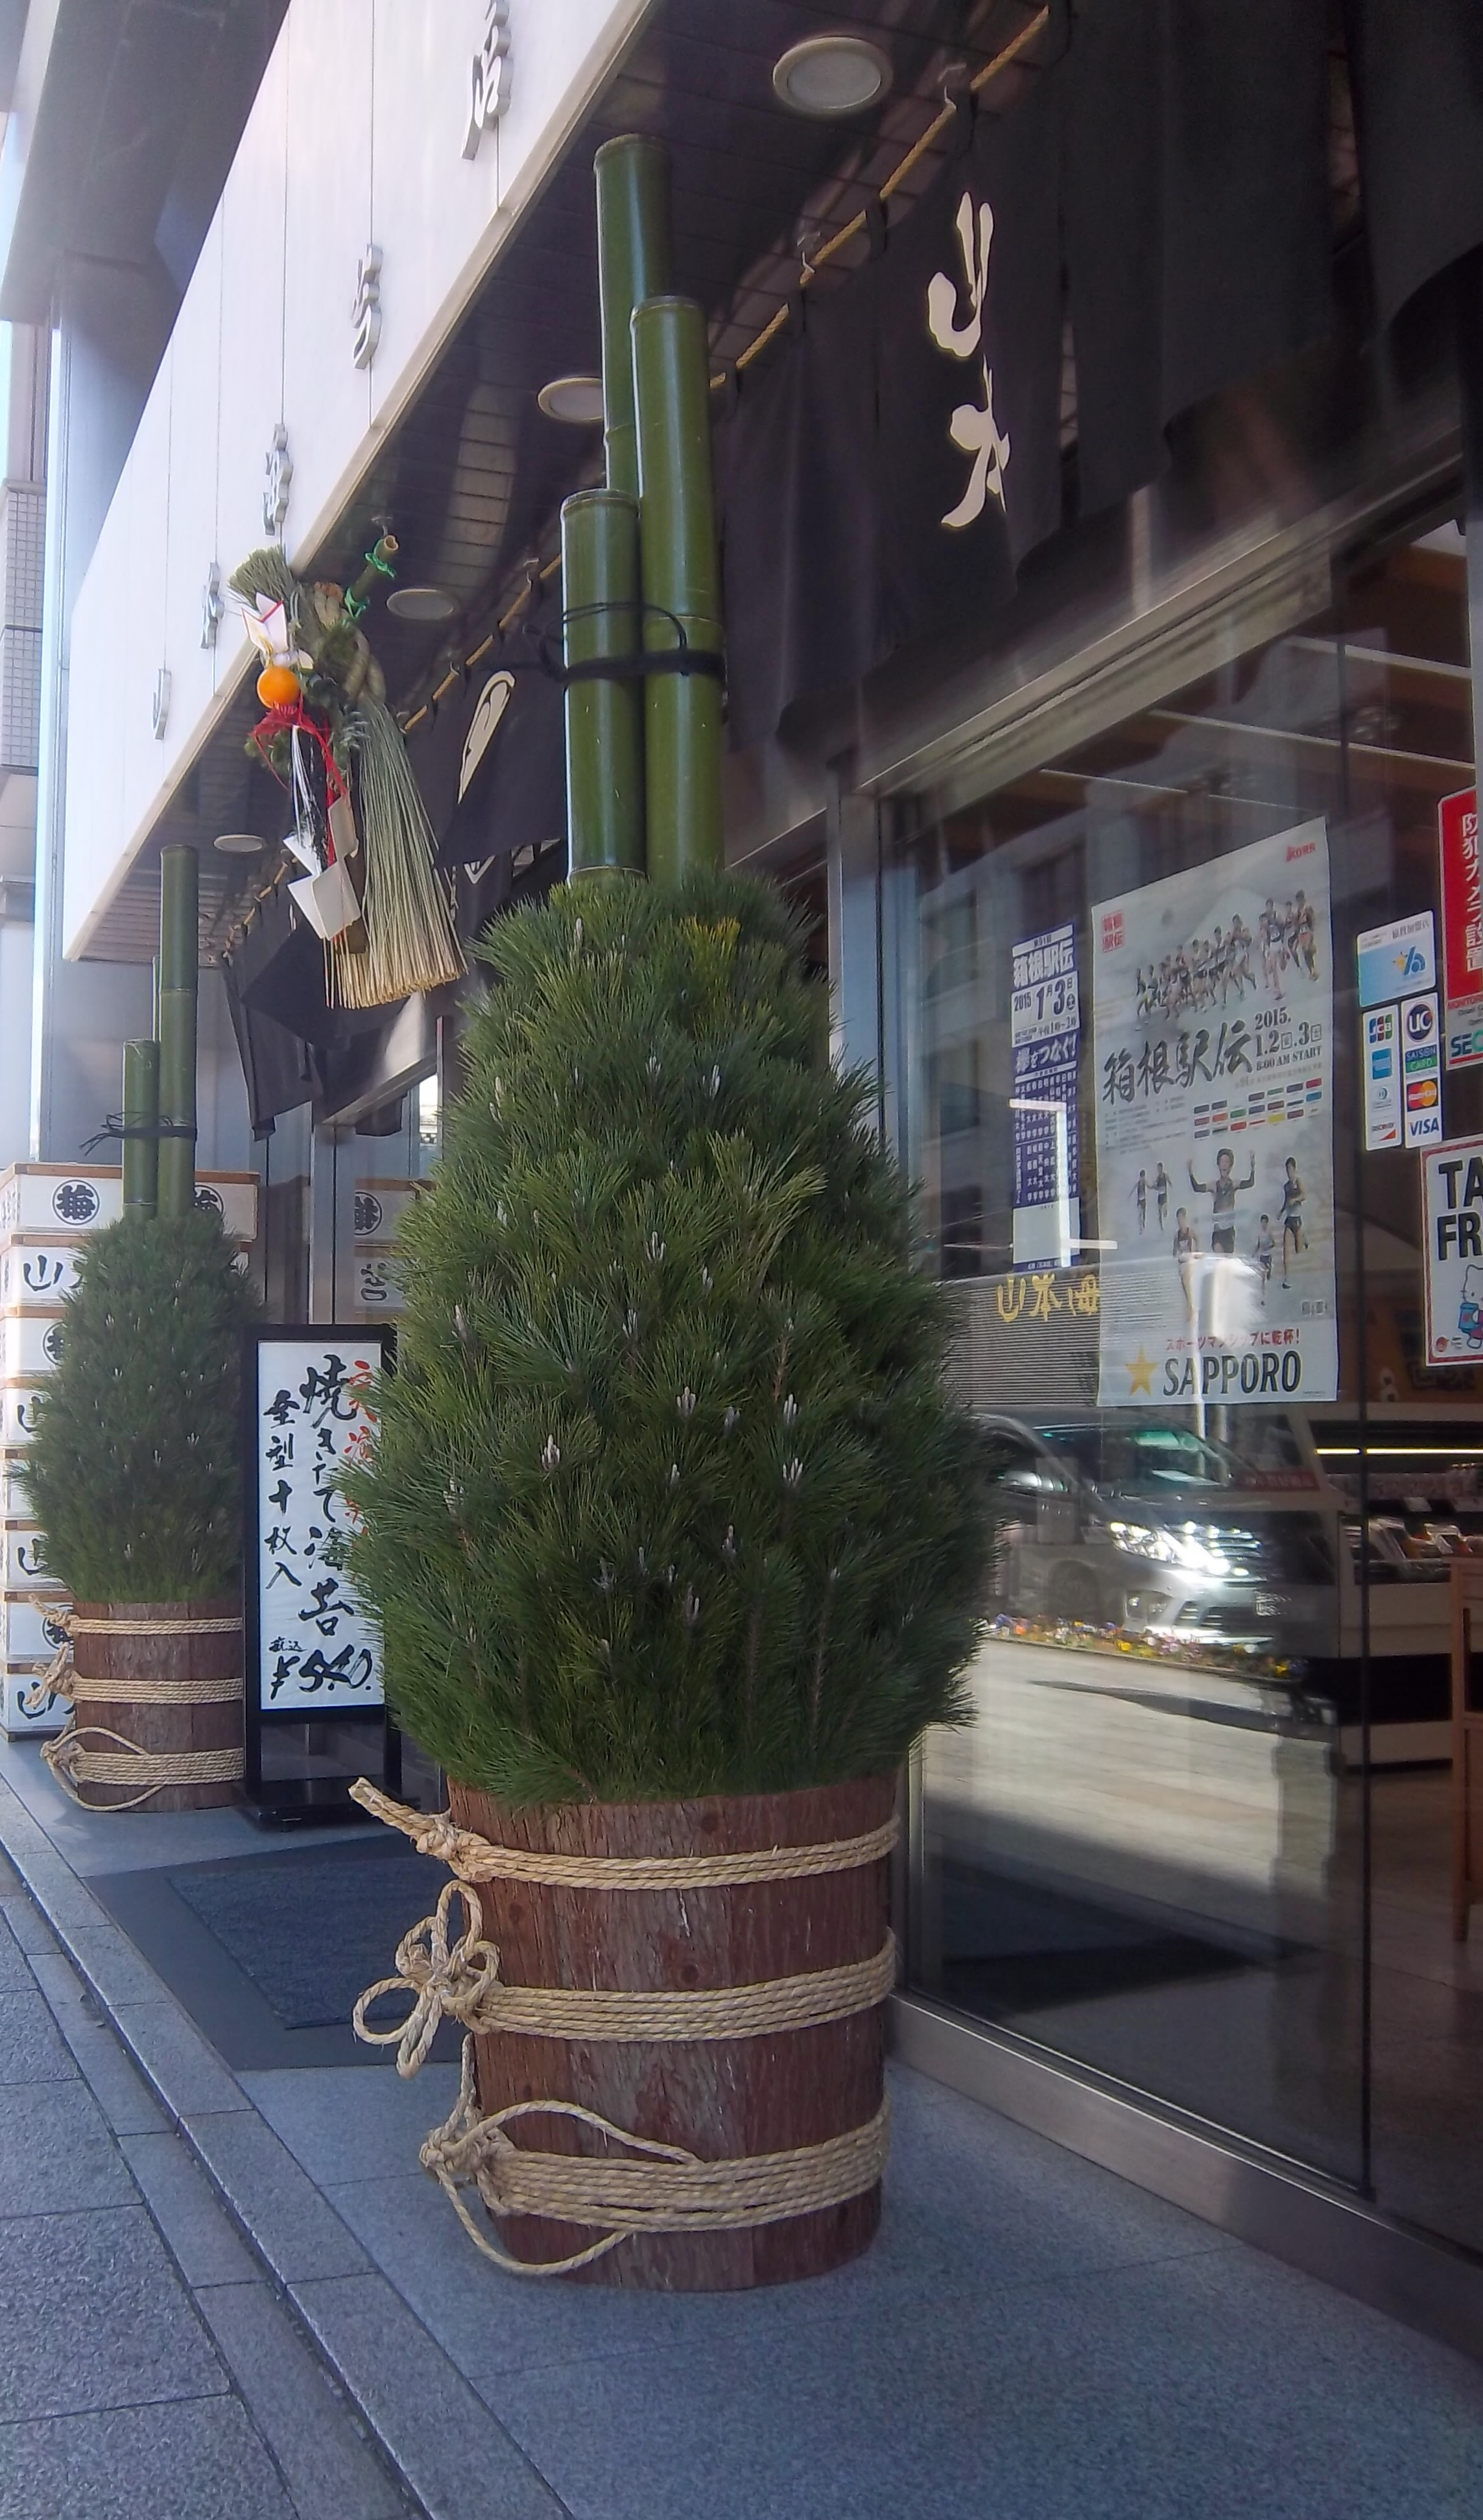 a pair of Kadomatsu, traditional New Year symbolic decoration of pine branches, bamboo and straw standing out side the entrance to a shop, flanking a corn dolly style message above the door.